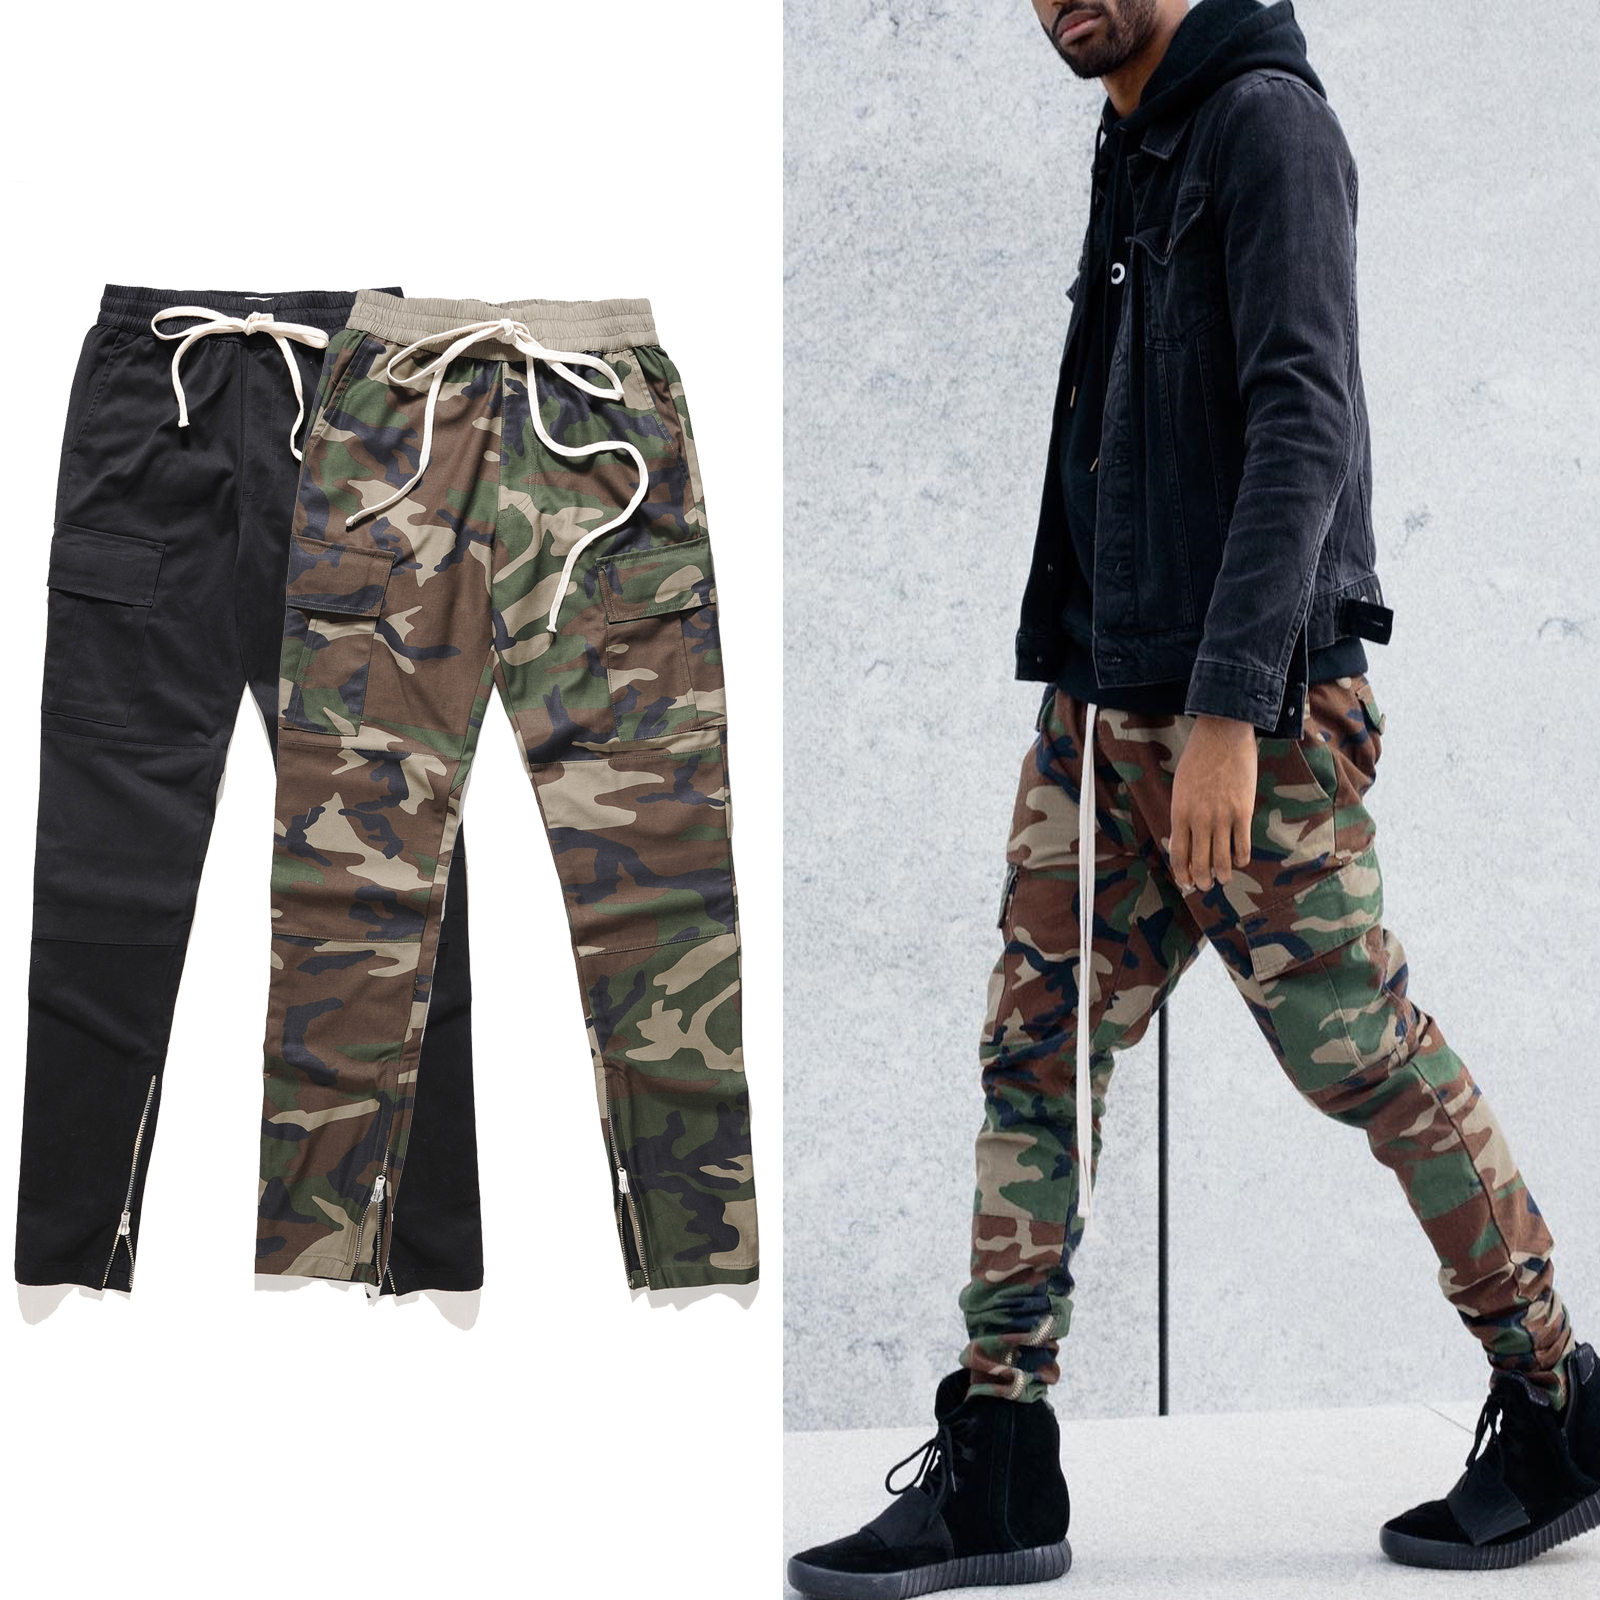 Compare Prices on Ankle Zipper Pants- Online Shopping/Buy Low ...